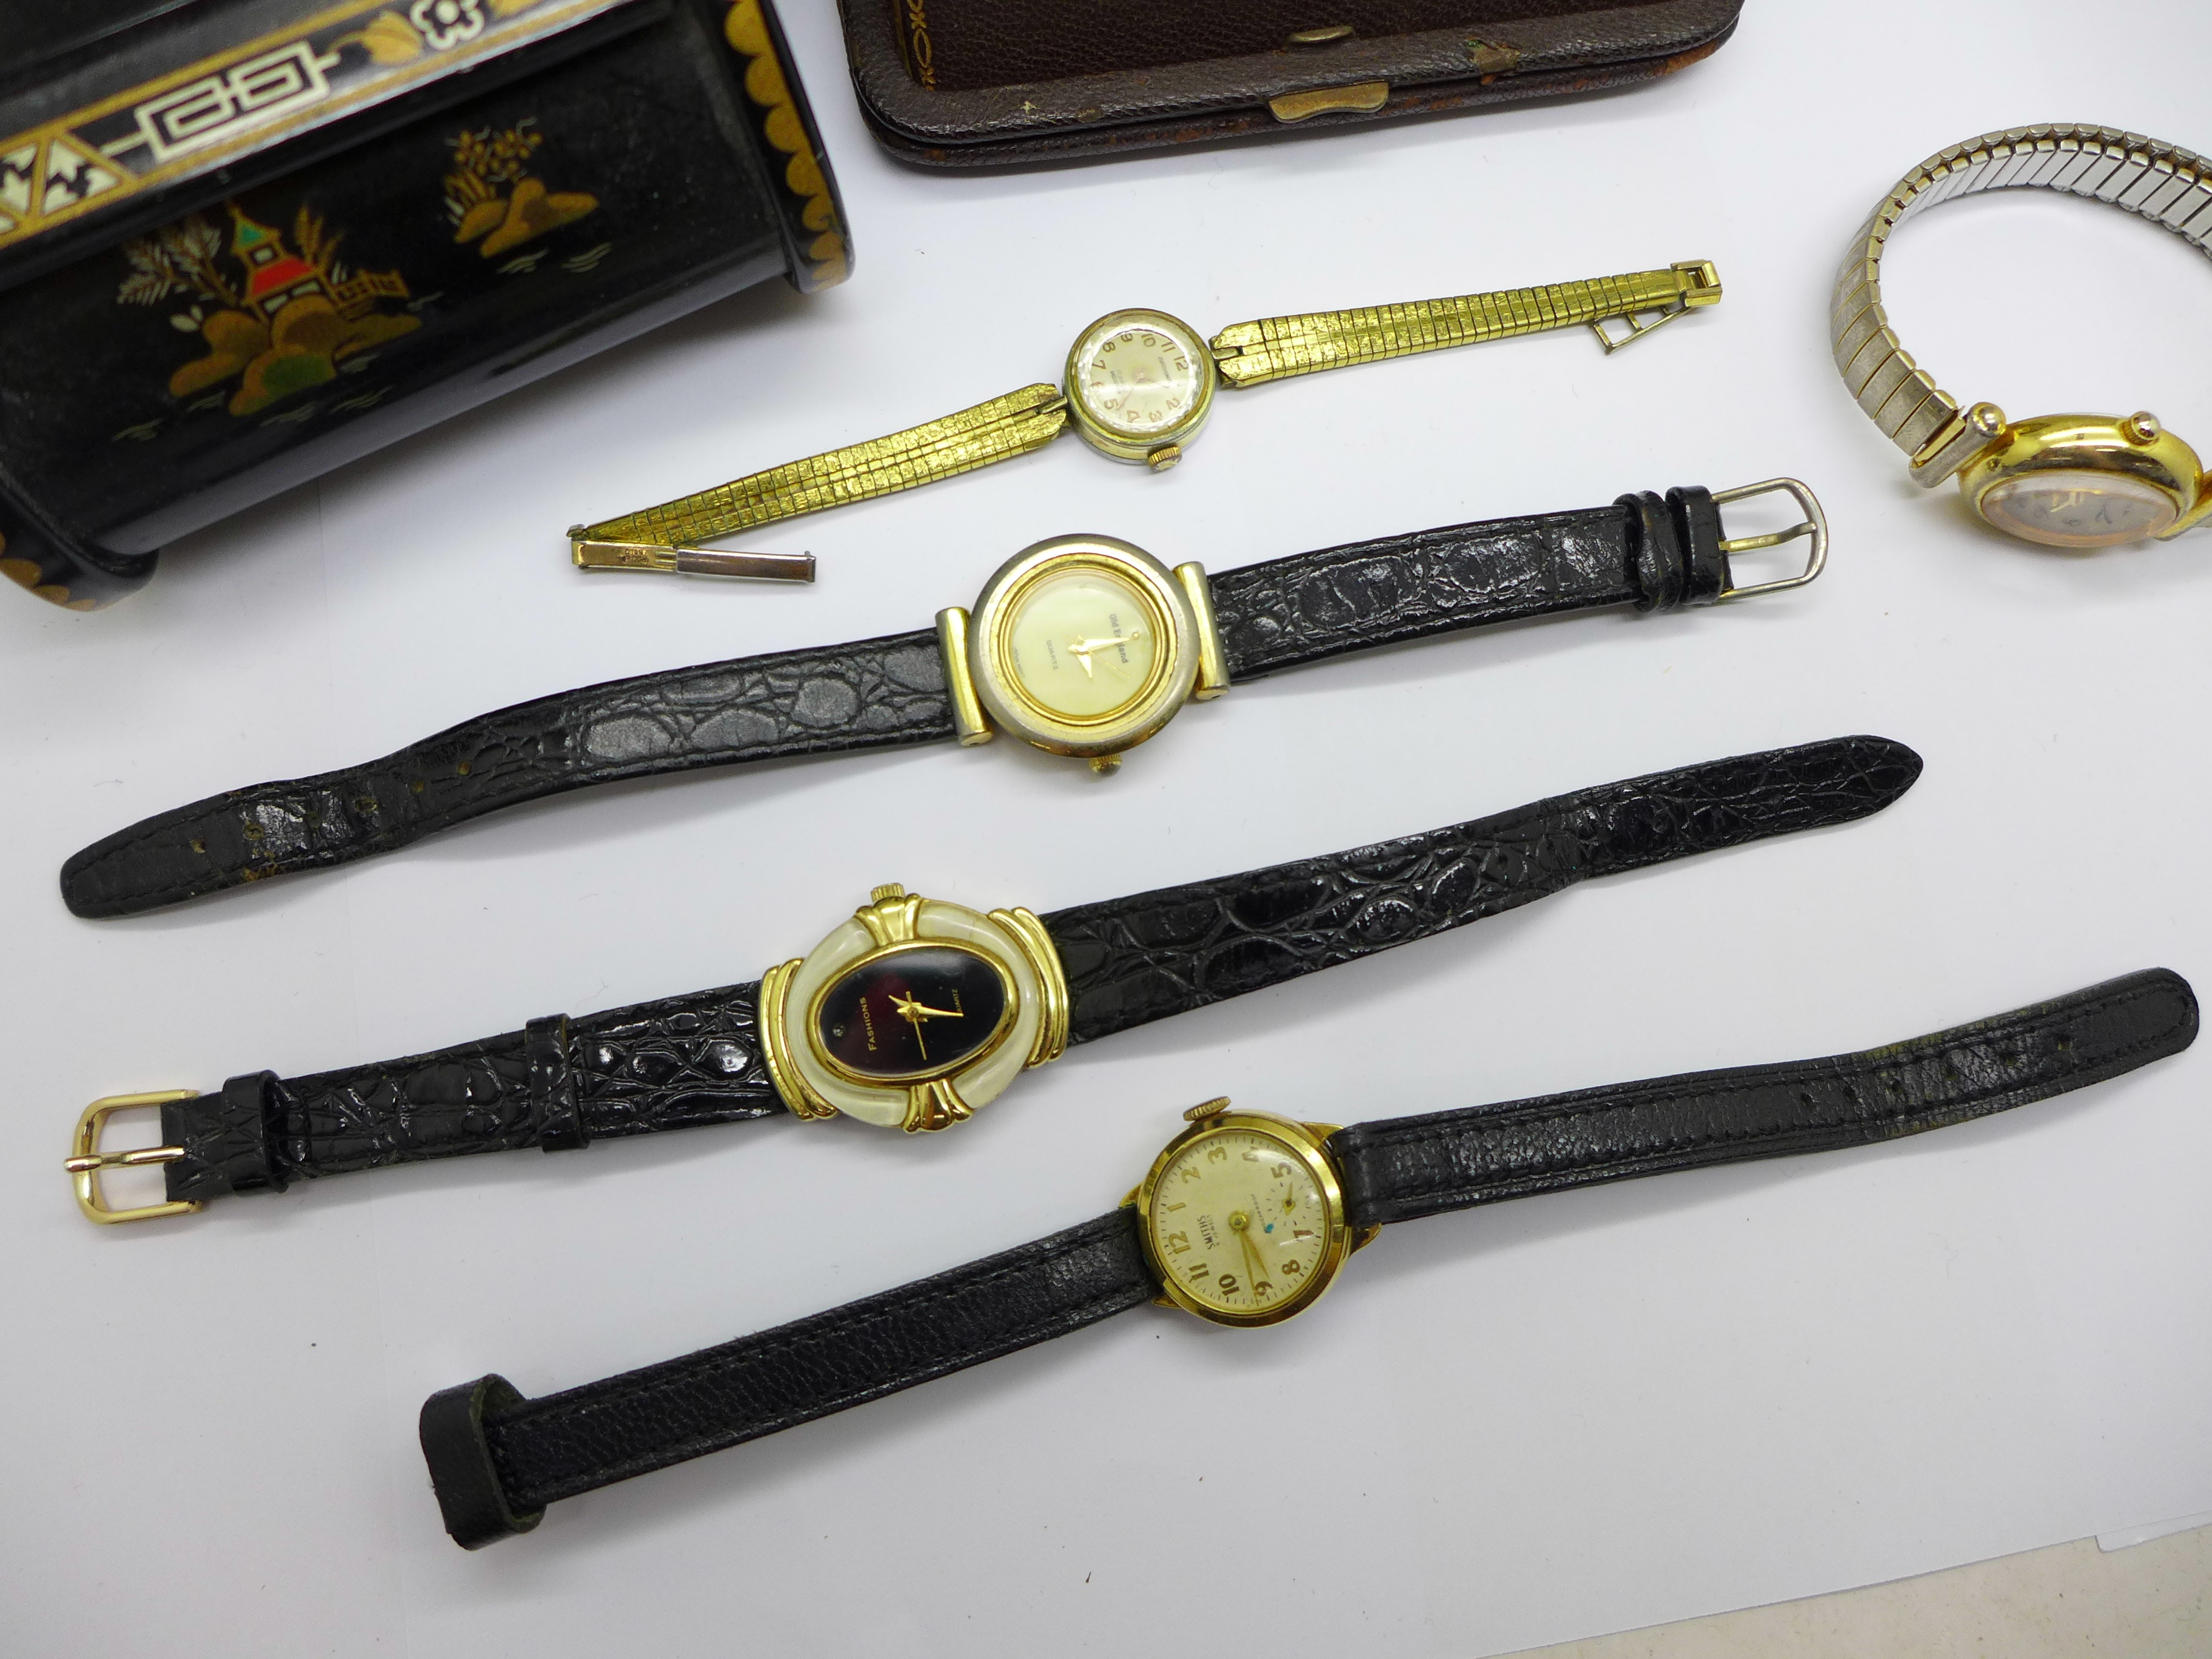 Five lady's wristwatches, a Kienzle travel clock and a trinket box - Image 2 of 9